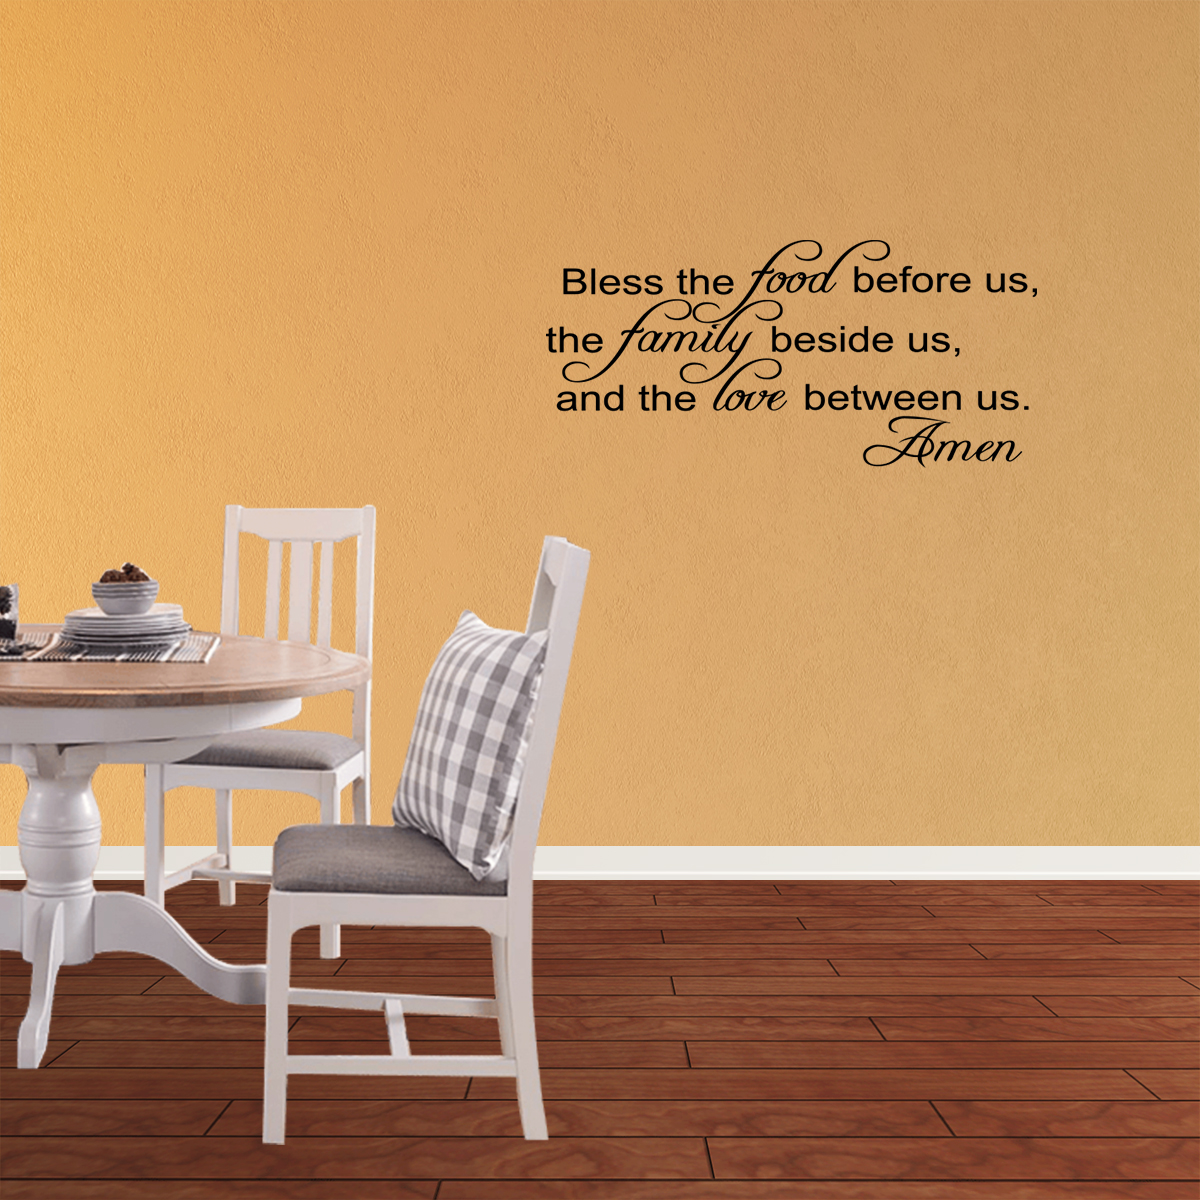 ba9d7fc9e0e Bless The Food Before Us Vinyl Wall Decal Thanksgiving Quotes Home Kitchen Dining  Room Sticker Holiday Fall Decor JR308 - Walmart.com